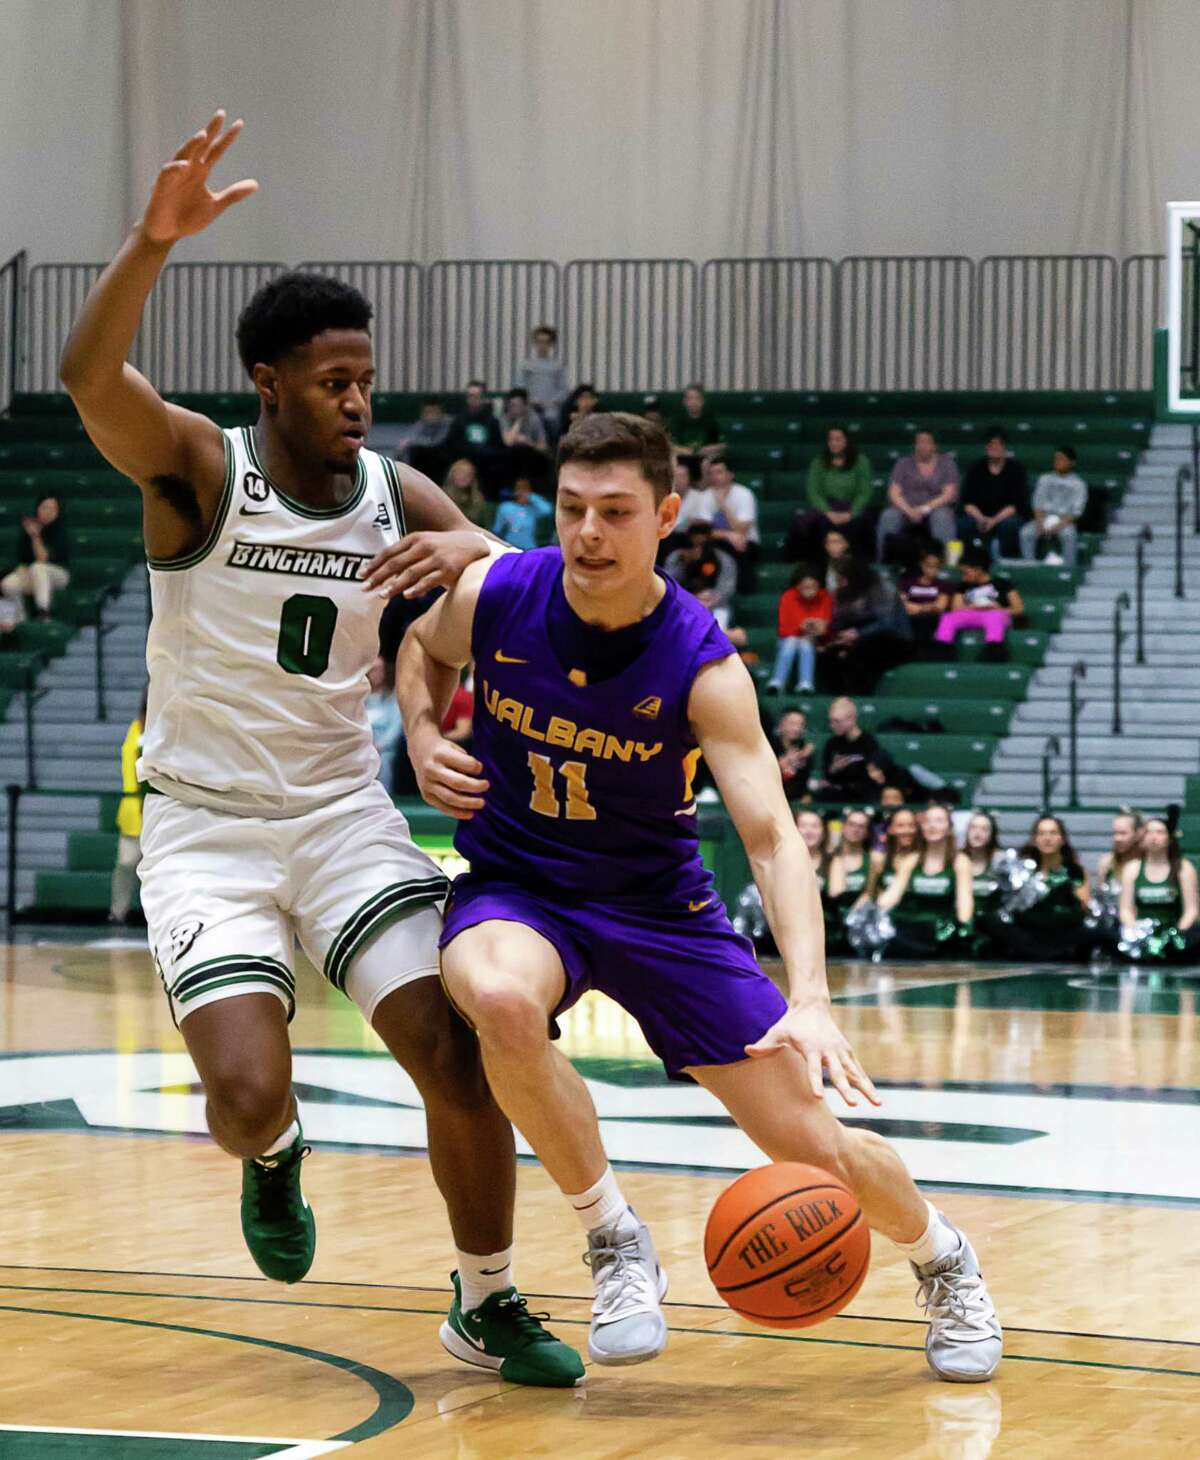 UAlbany's Cameron Healy dribbles around Binghamton's Richard Caldwell Jr. during their game Saturday, Jan. 4, 2020. (Courtesy of Brent Warzocha)